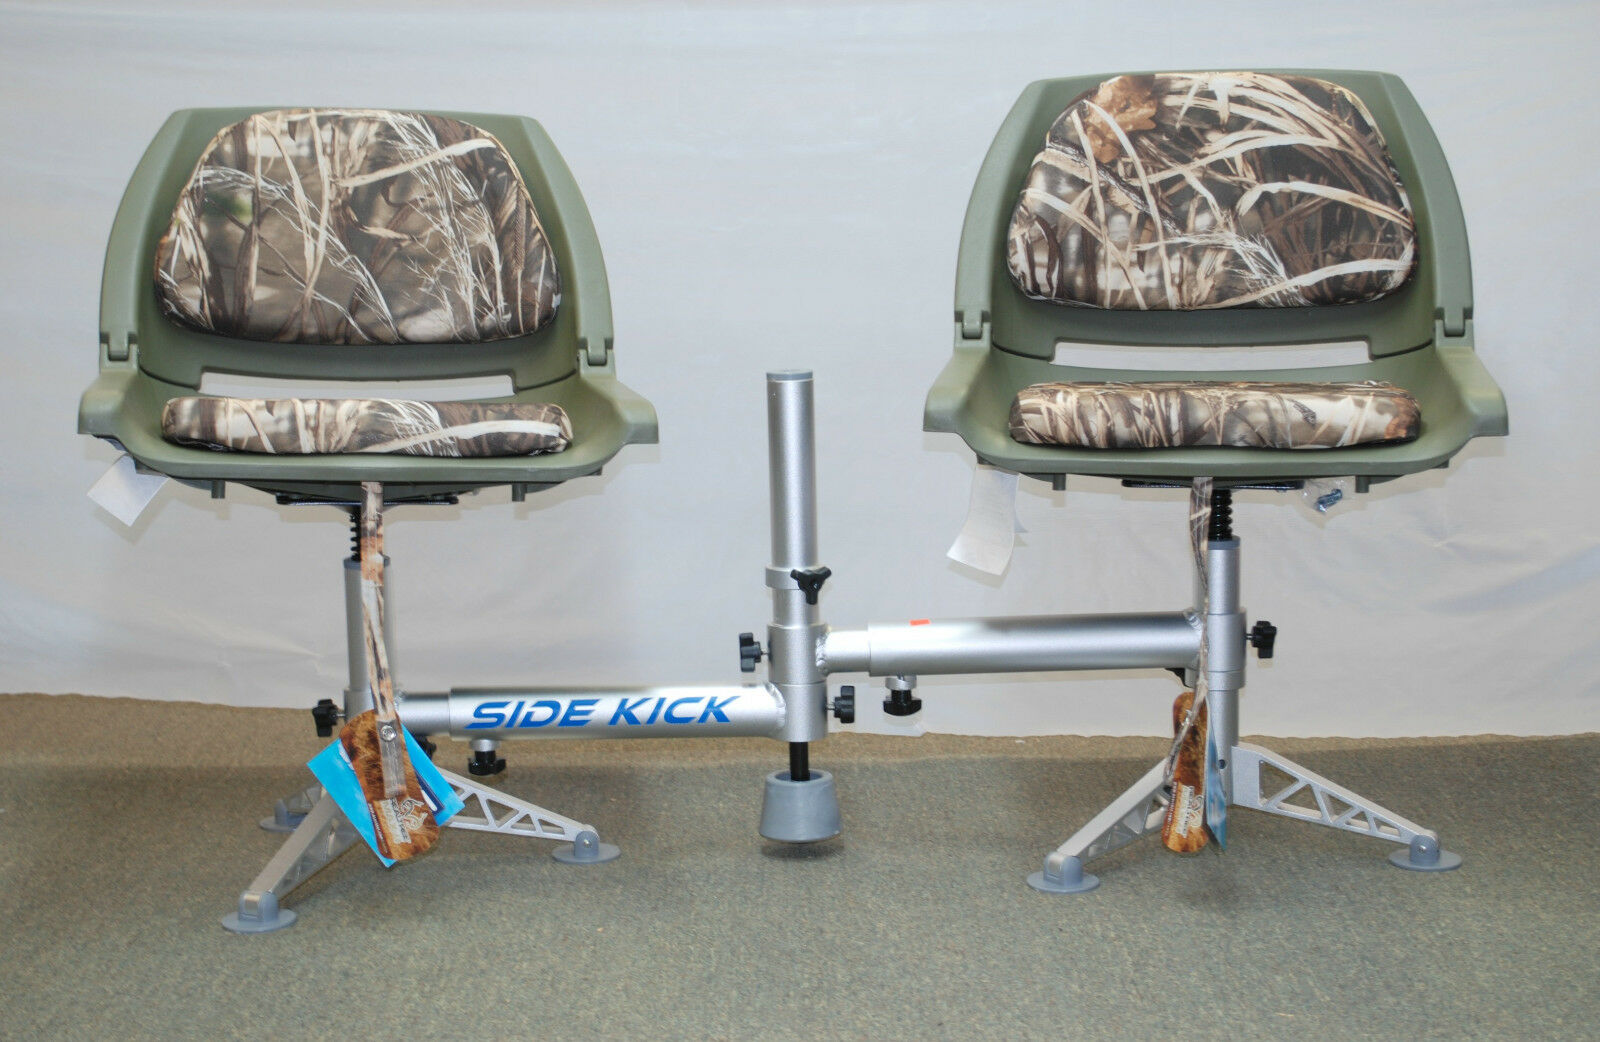 MILLENNIUM DOUBLE SEAT STAND D200 SPECIAL W  2 WISE  CAMO PLASTIC SEATS  new products novelty items